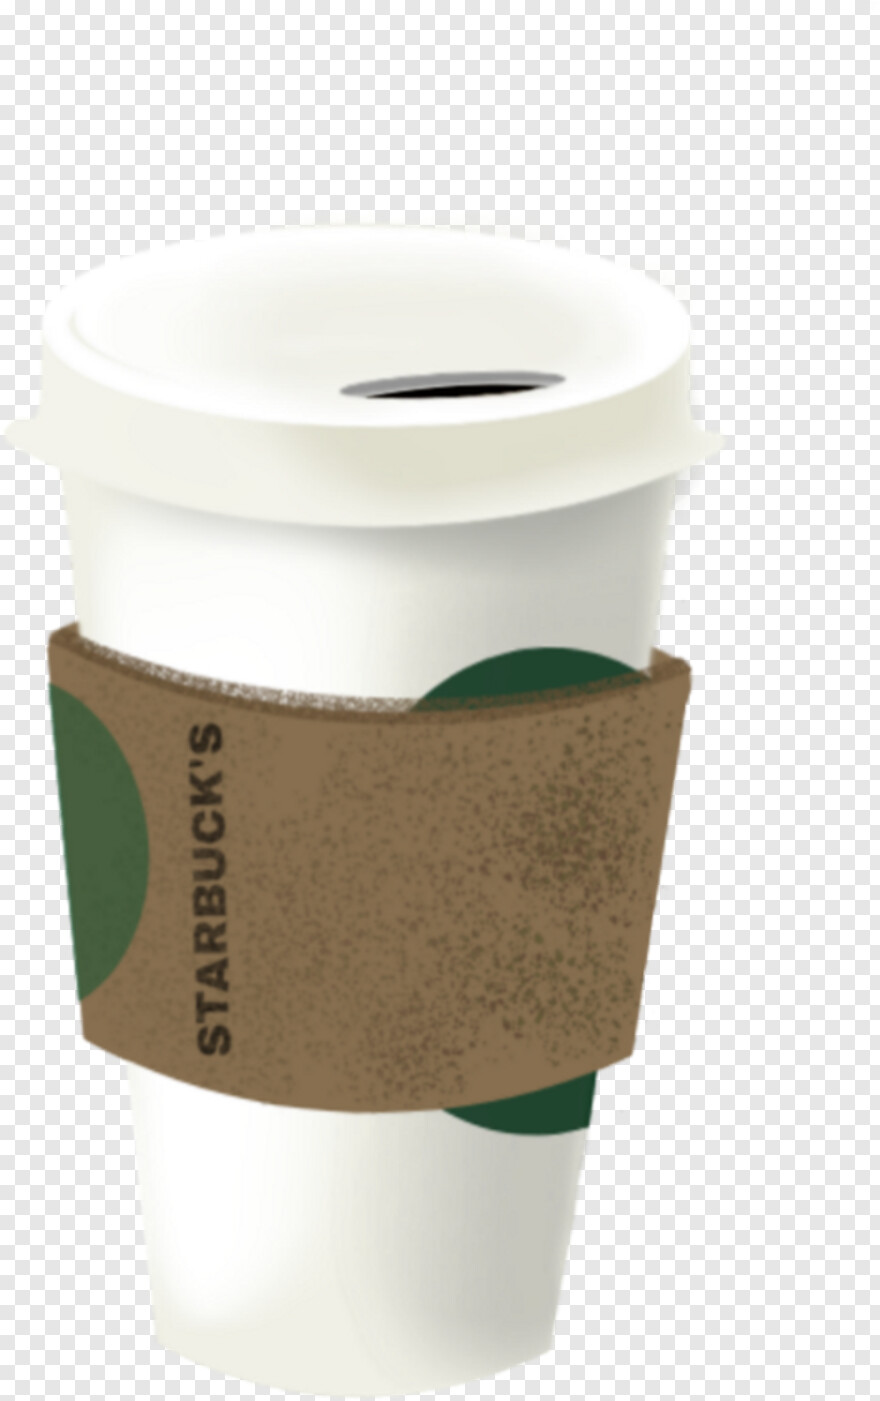 Starbucks Coffee Coffee Cup Png Download 1024x1286